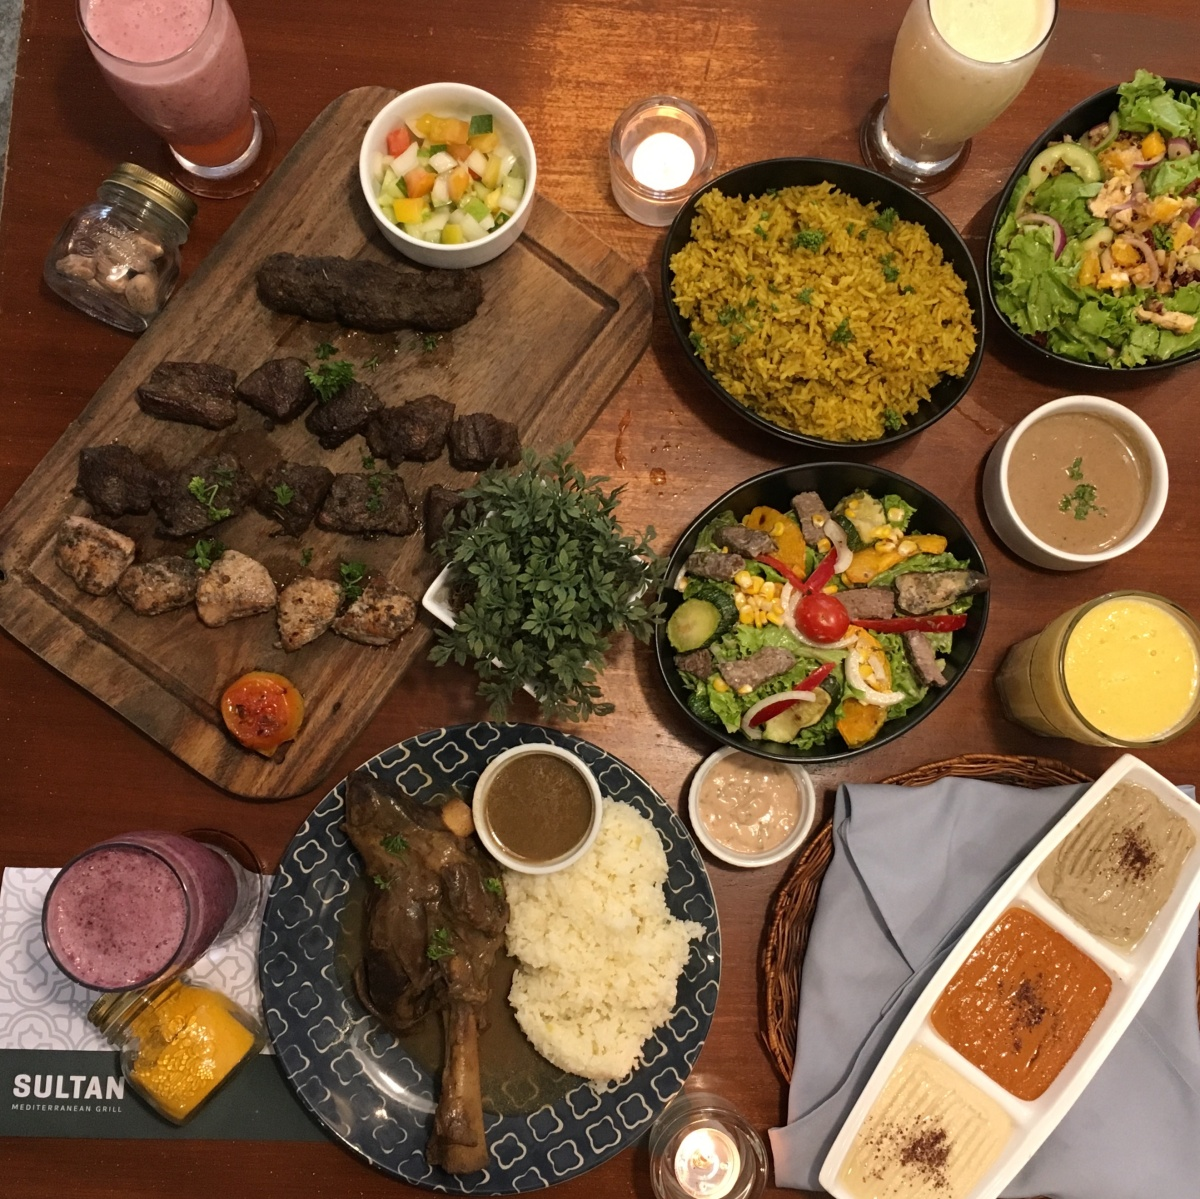 Three reasons to have your Sunday brunch at Sultan Mediterranean Grill,Makati